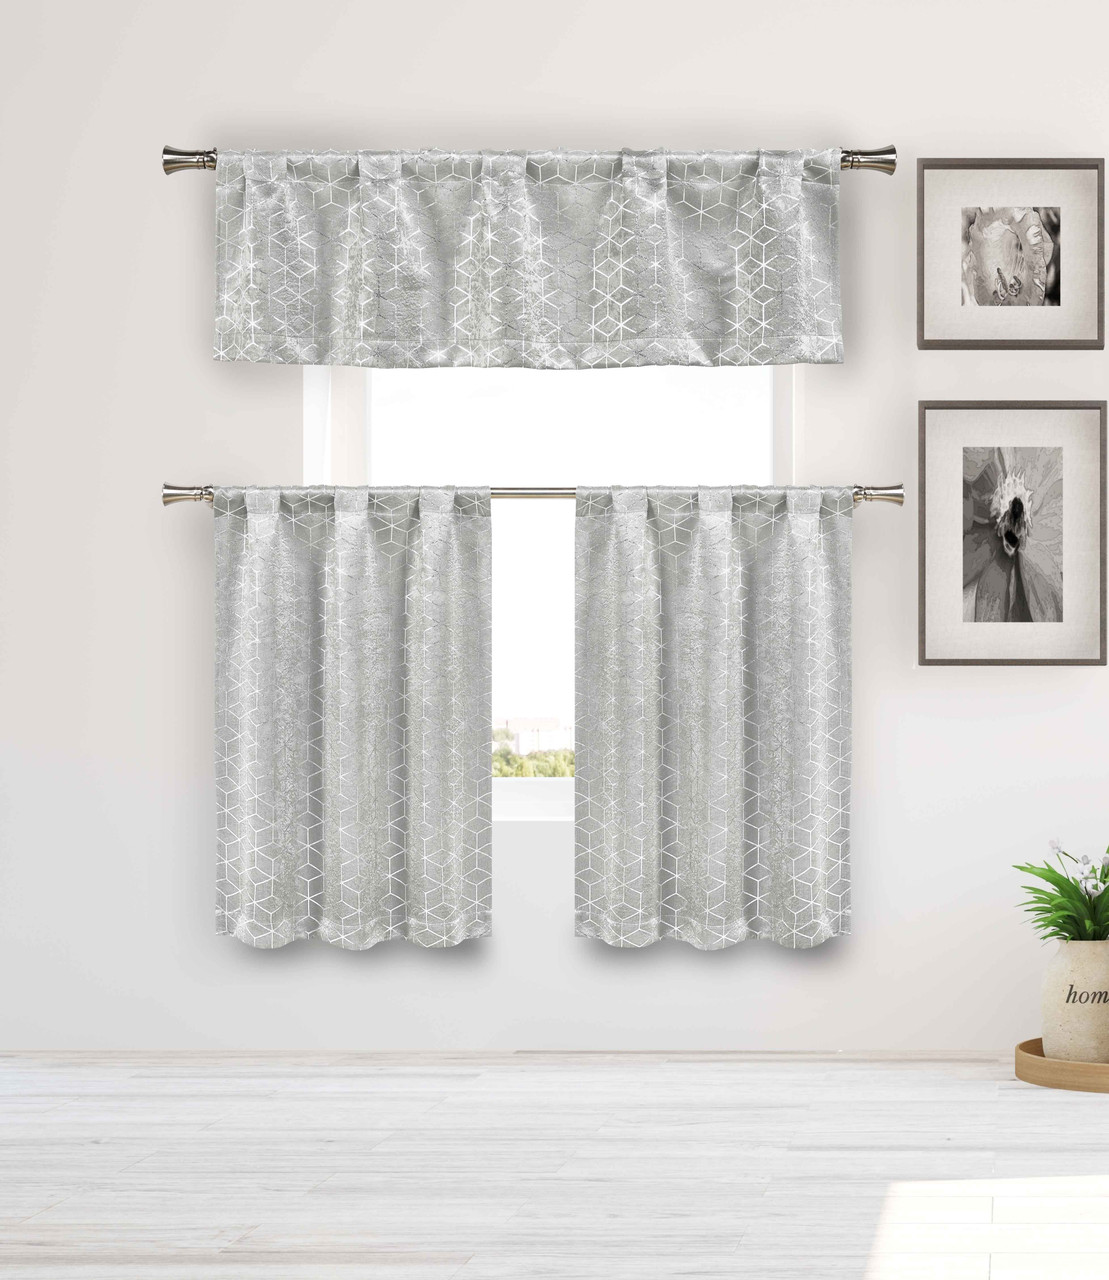 blackout privacy gray 3 piece window curtain set with silver metallic cube design one valance two tiers 36 in long kitchen bathroom small window